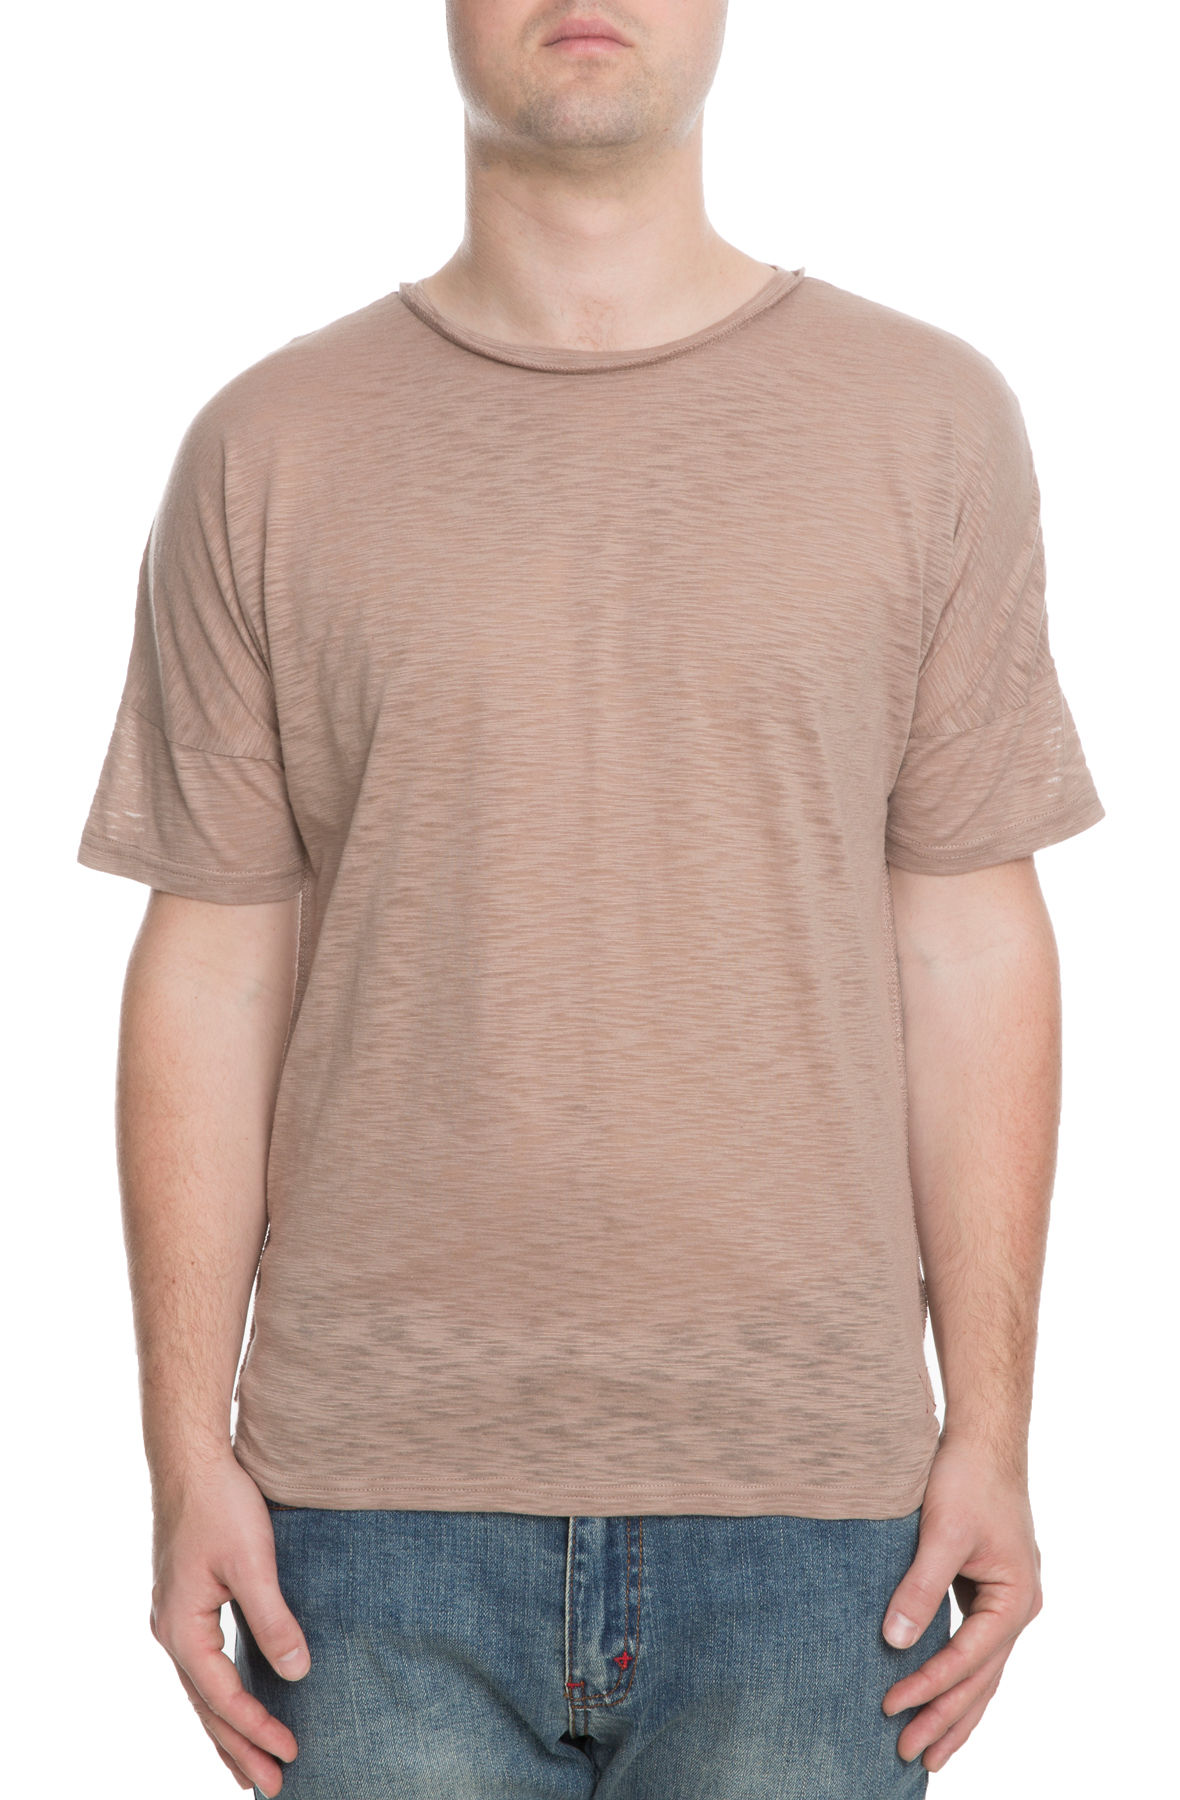 The Gator Off Shoulder Tee in Brown